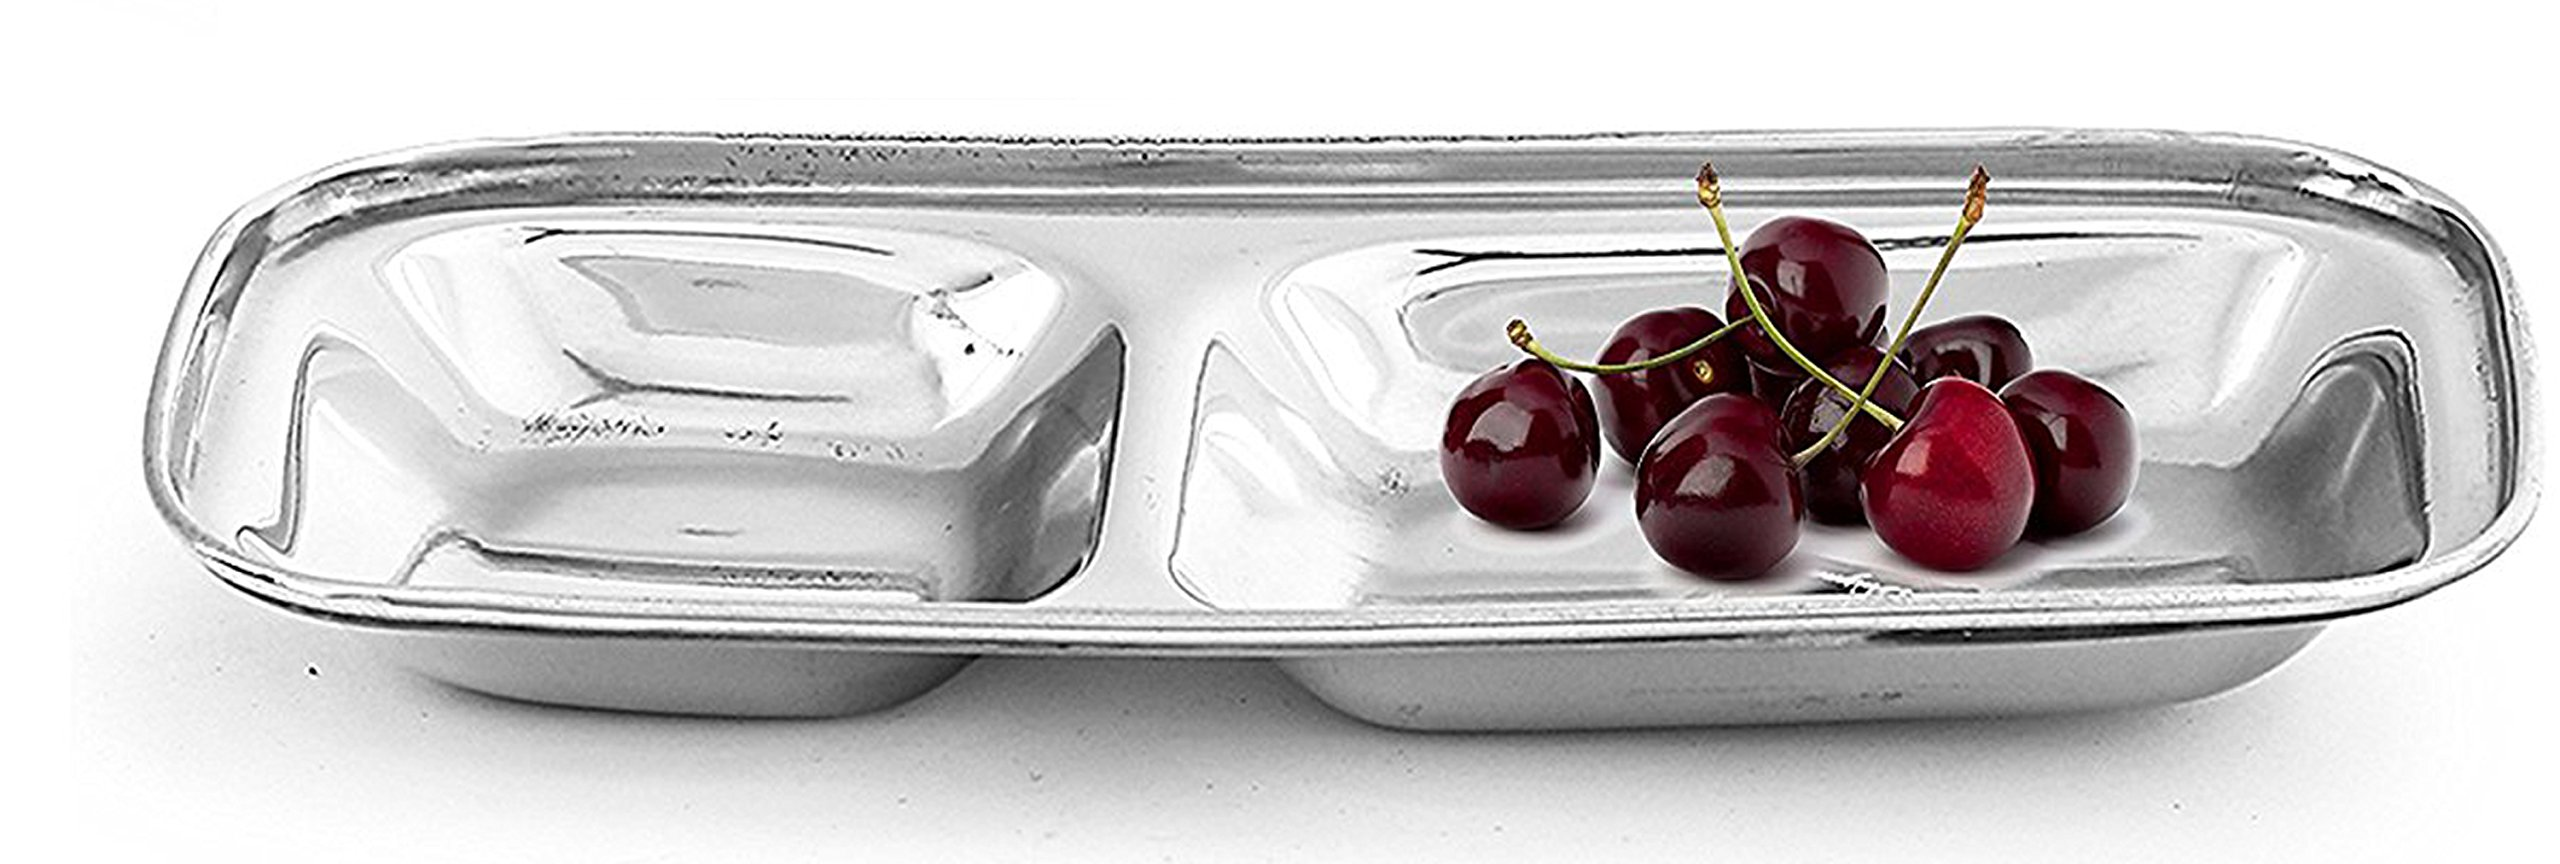 King International 100% Stainless Steel Two in one Dinner Plate Two sections divided plate Two section plate -Set of 6 Mess Trays Great for Camping, 21 cm